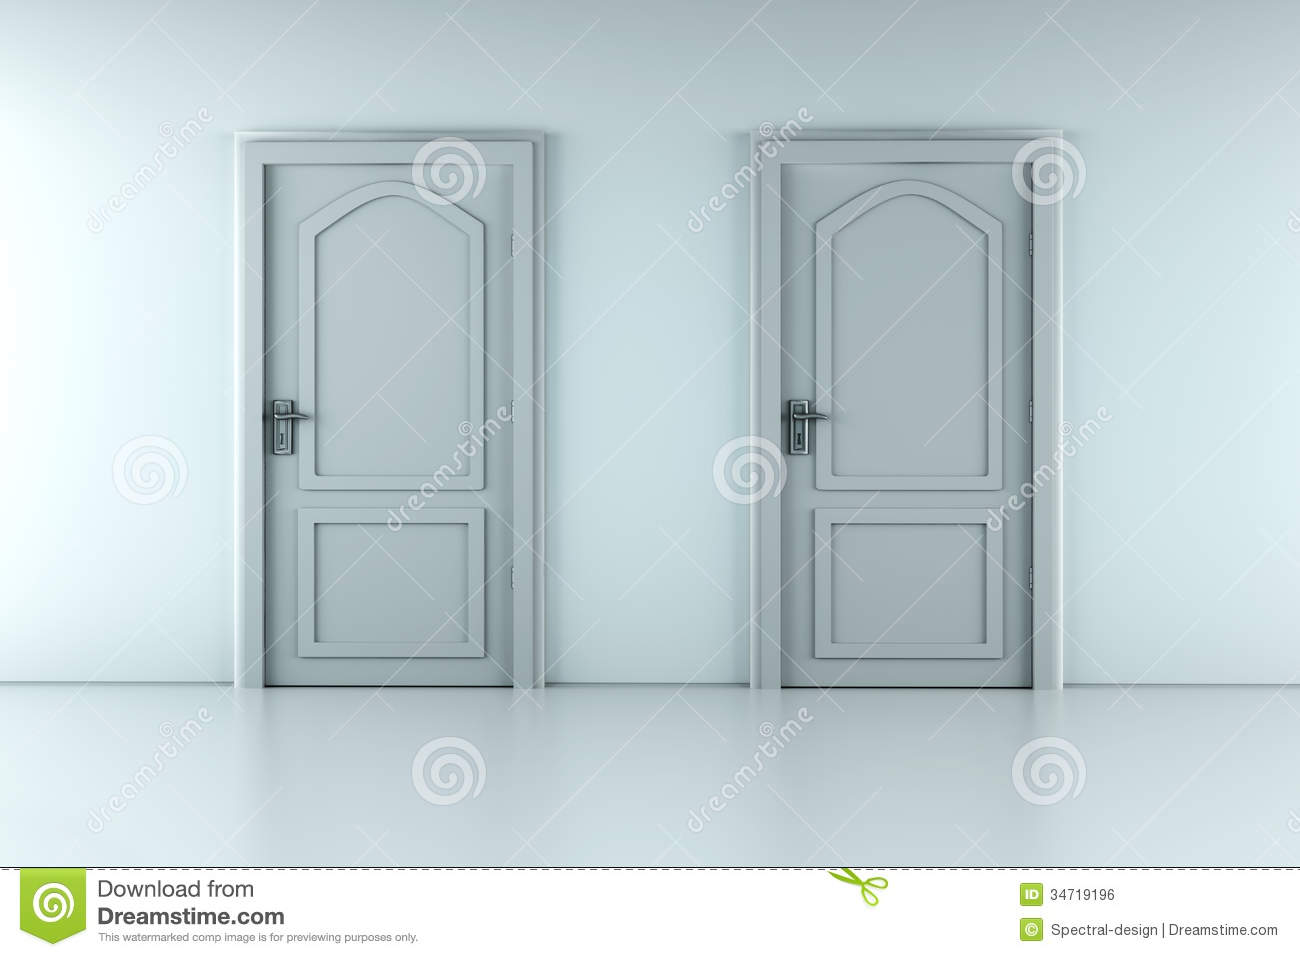 Royalty-Free Stock Photo. Download Two Doors ... & Two Doors Royalty Free Stock Image - Image: 34719196 pezcame.com